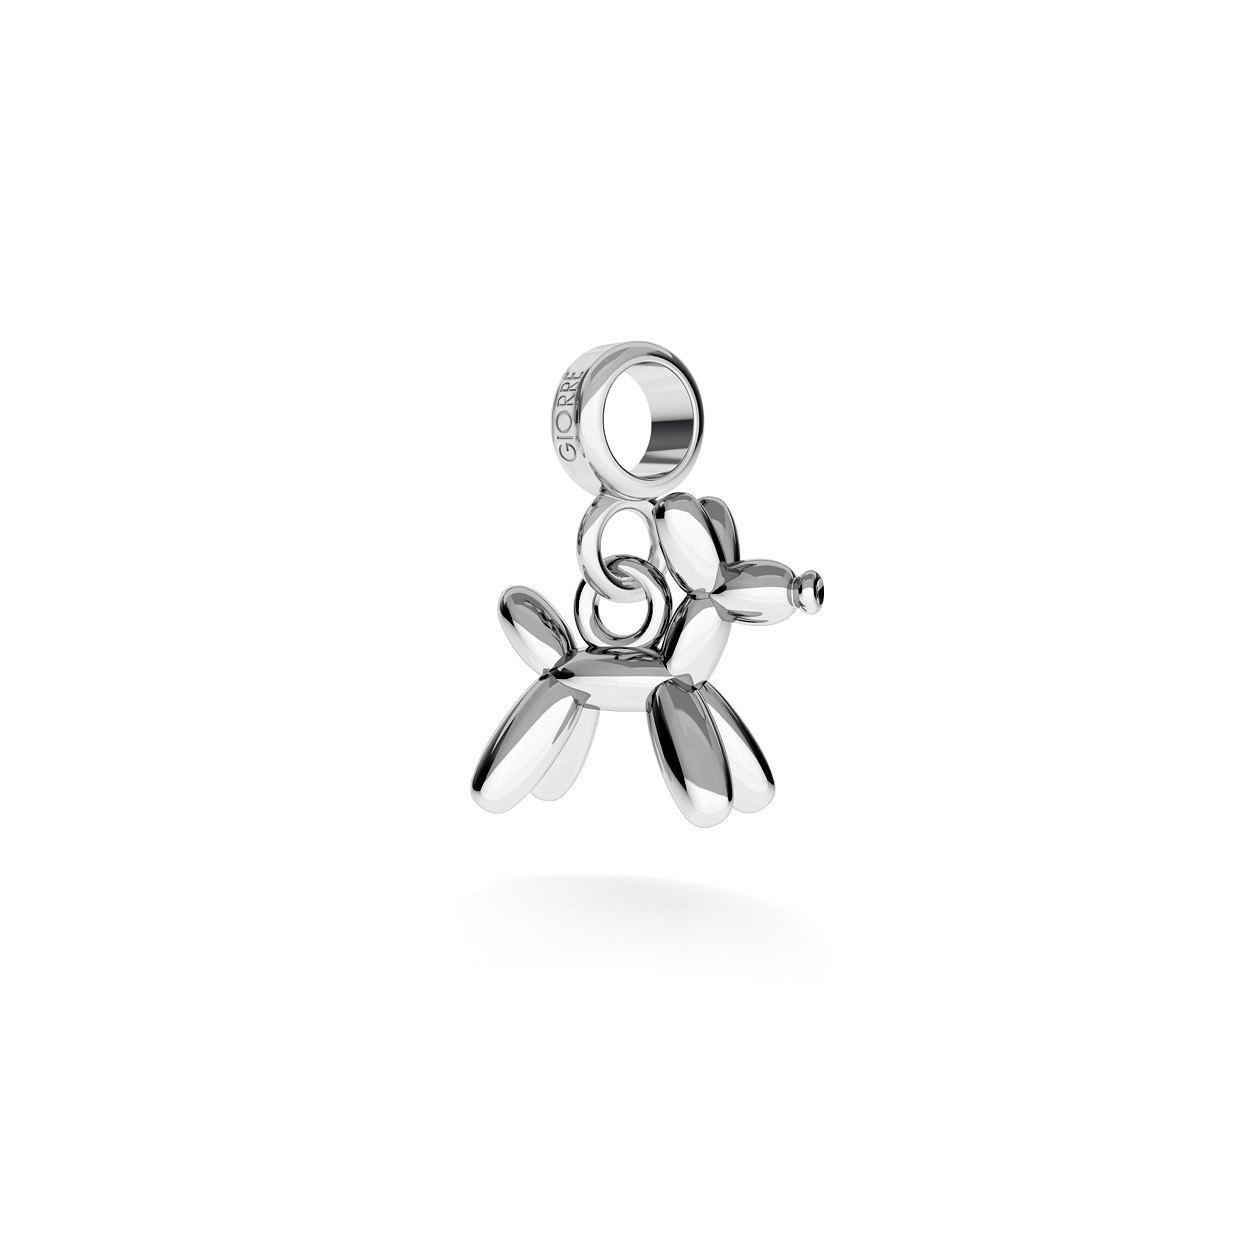 CHARM 138, BALLOON DOG, STERLING SILVER (925) RHODIUM OR GOLD PLATED